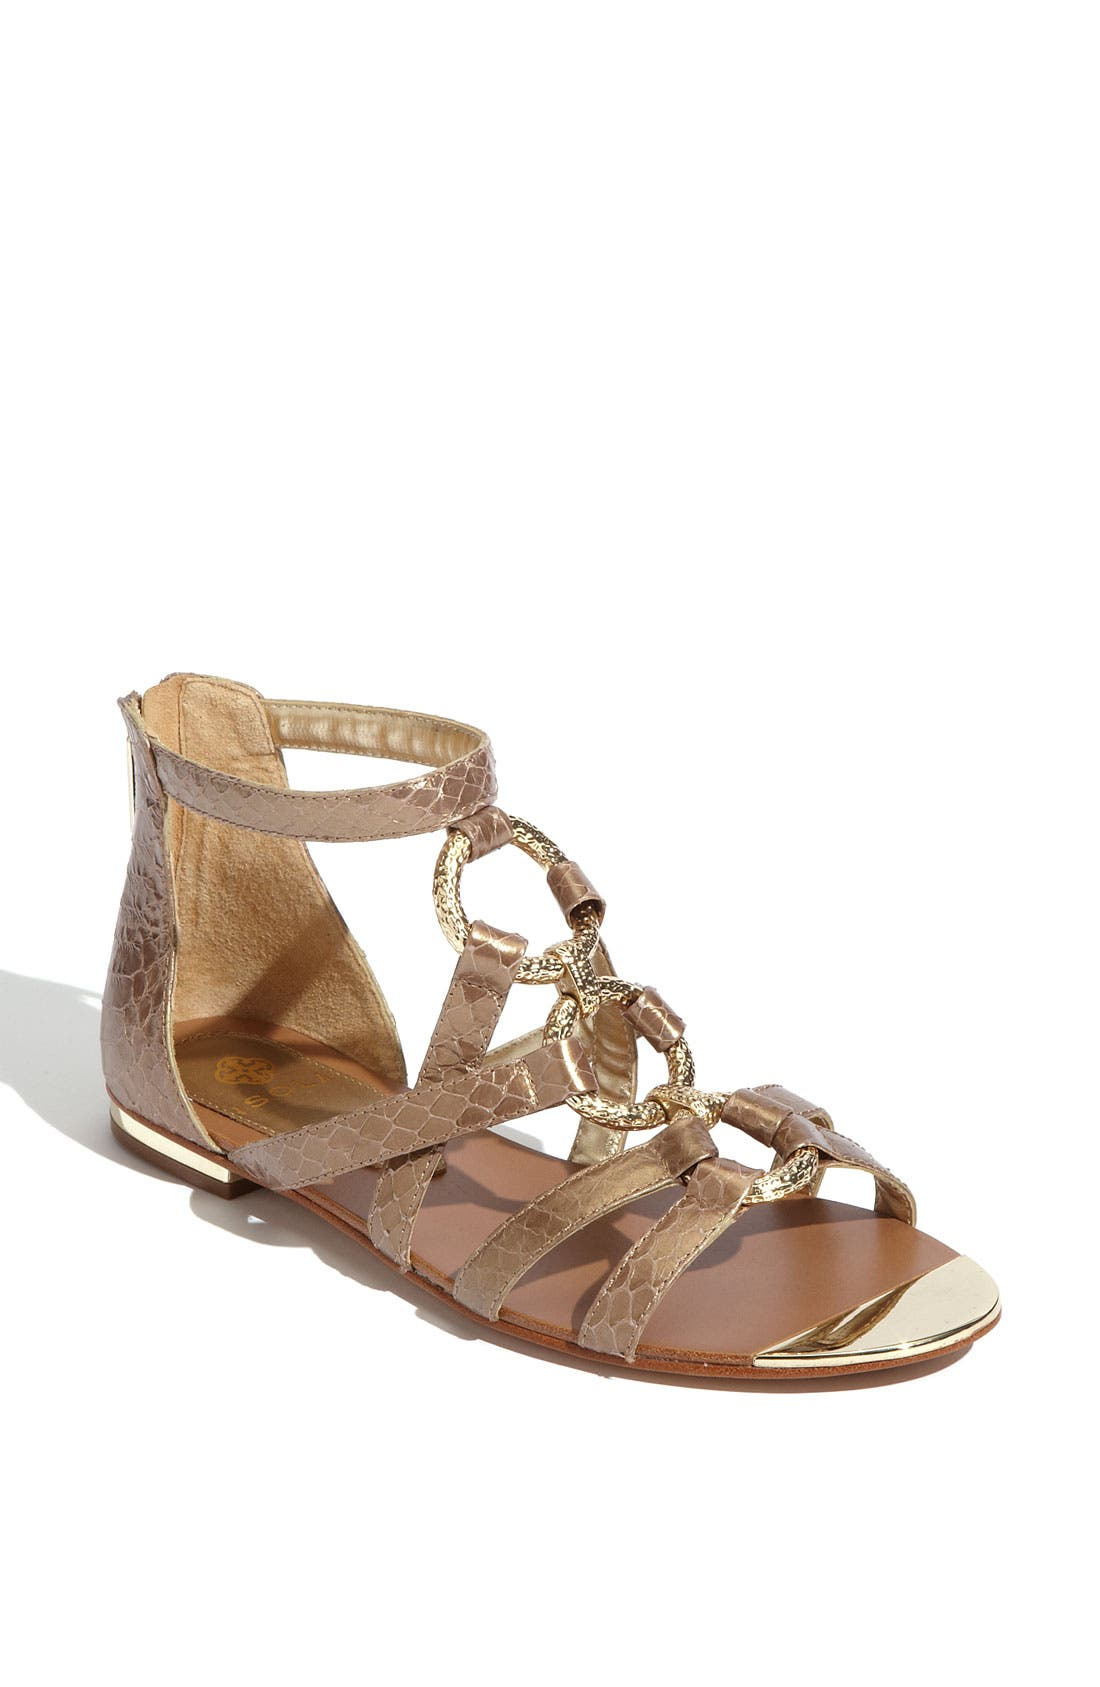 Alternate Image 1 Selected - Isolá 'Adriel' Flat Sandal